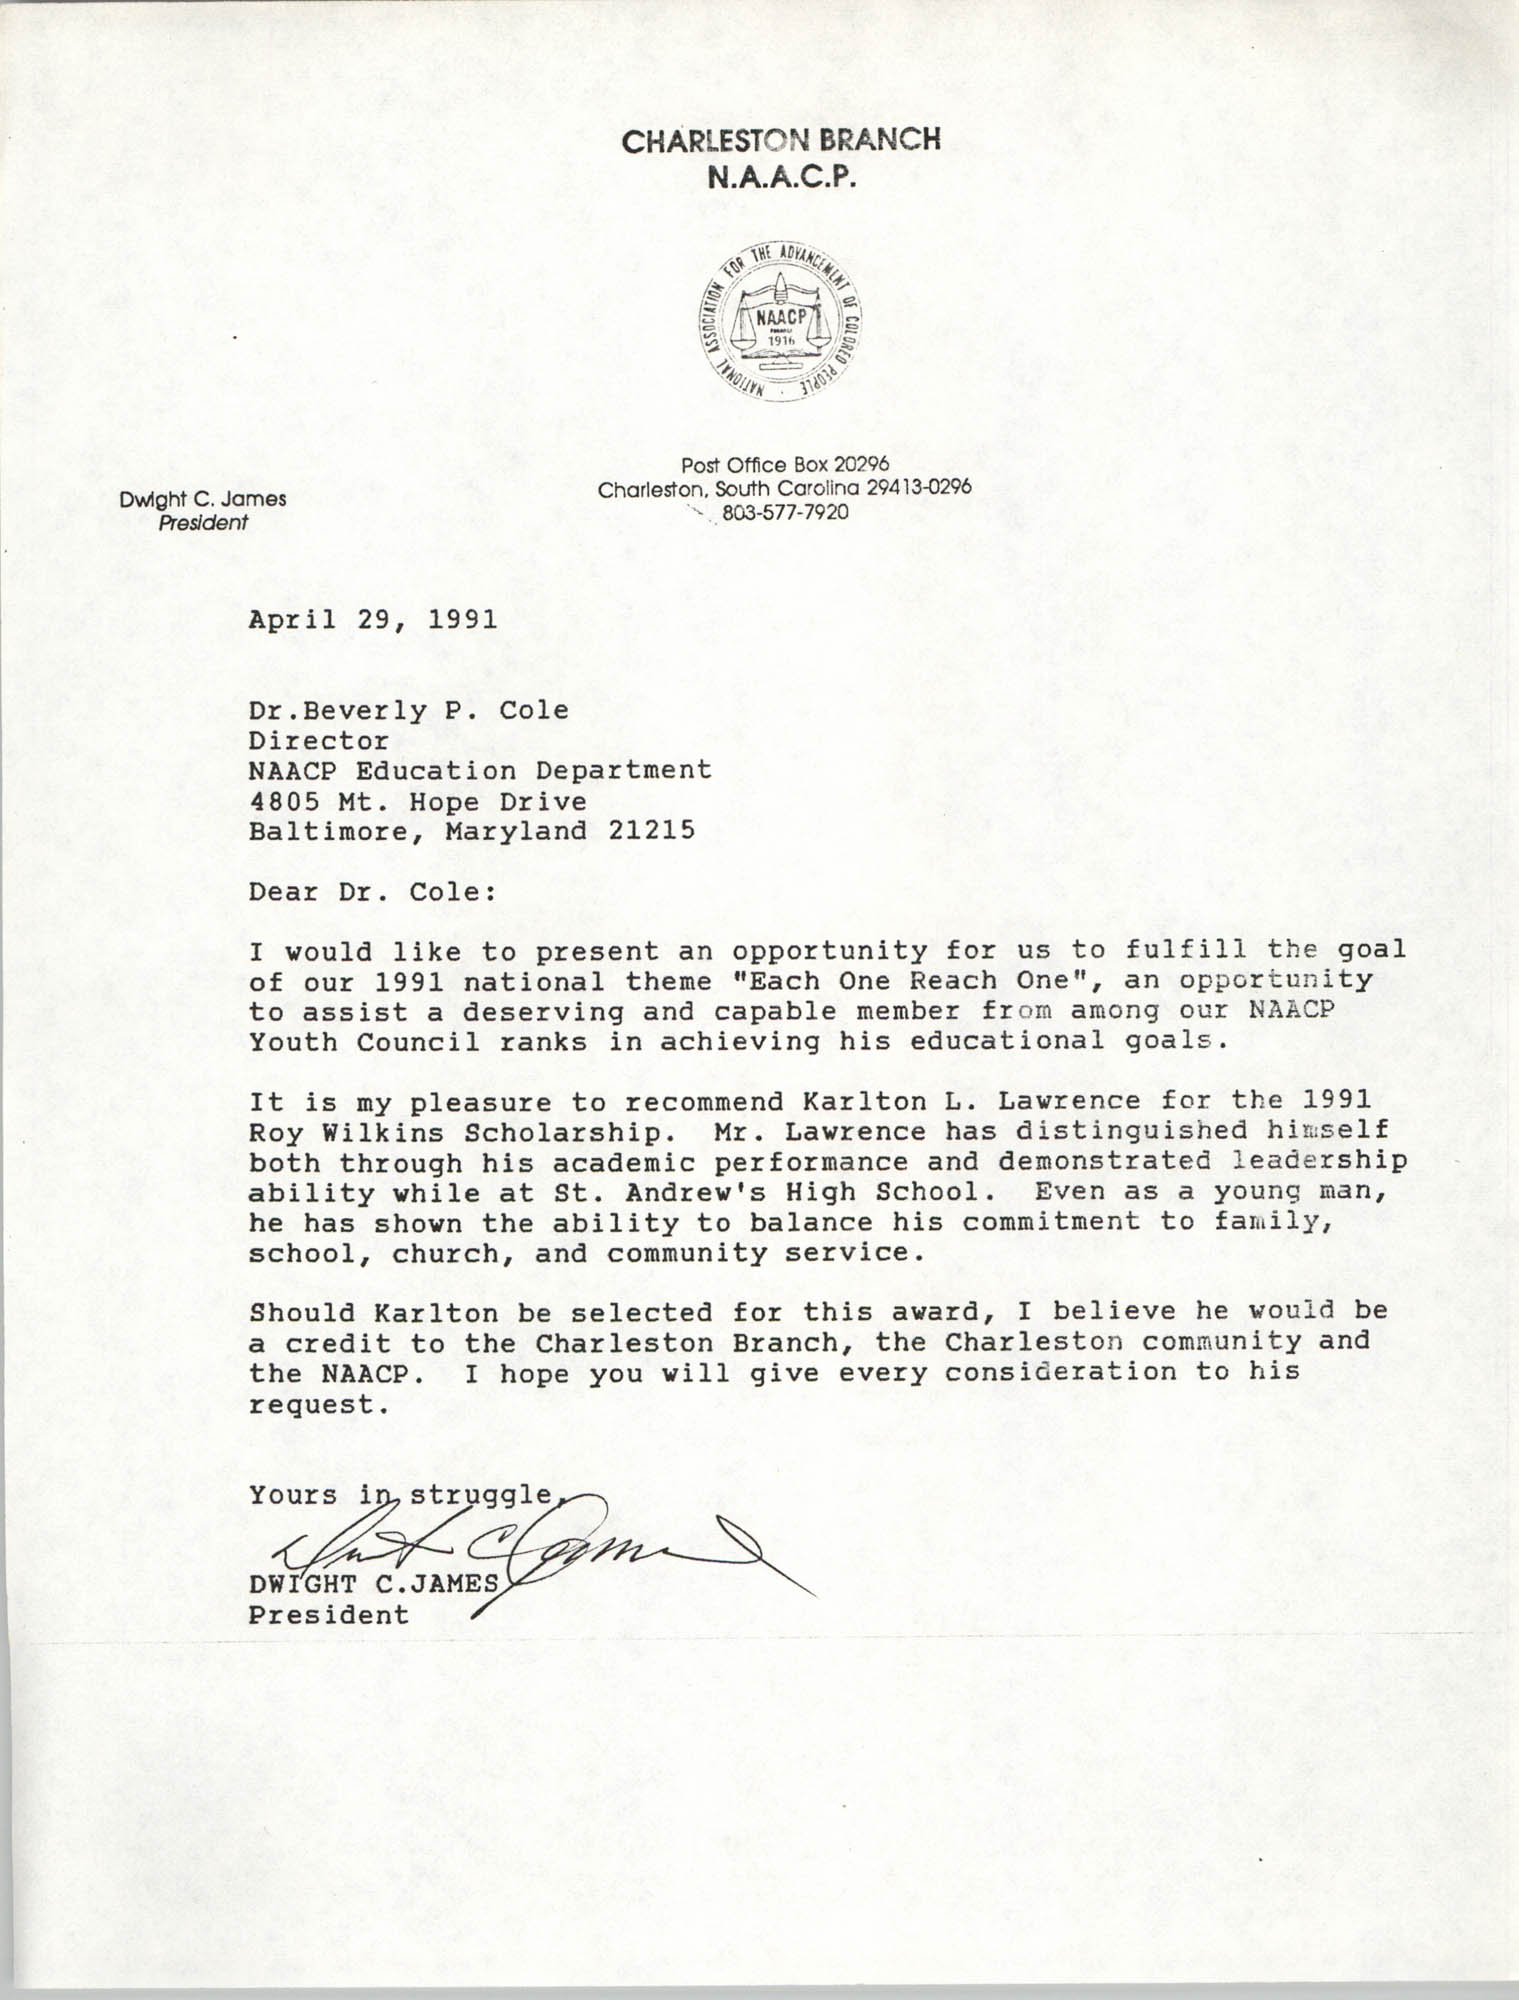 Letter from Dwight C. James to Beverly P. Cole, April 29, 1991